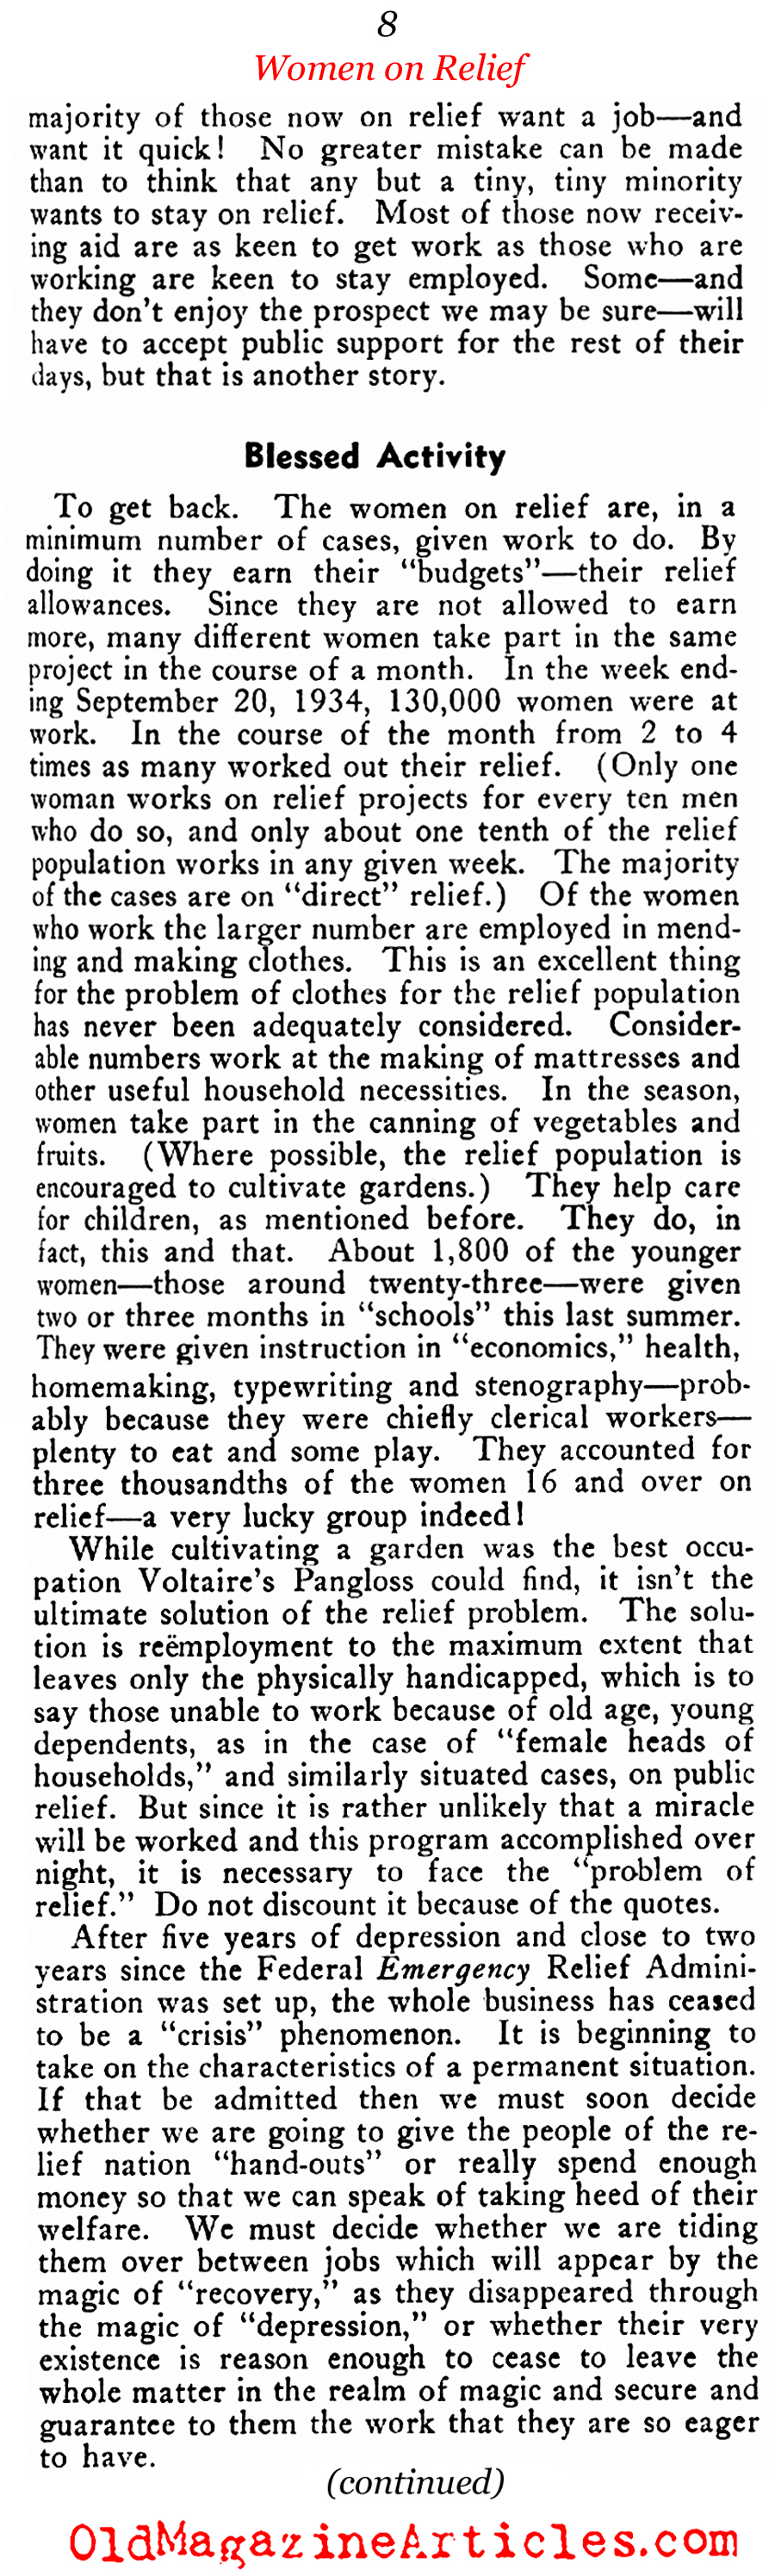 Women on the Relief Rolls (New Outlook Magazine, 1935)